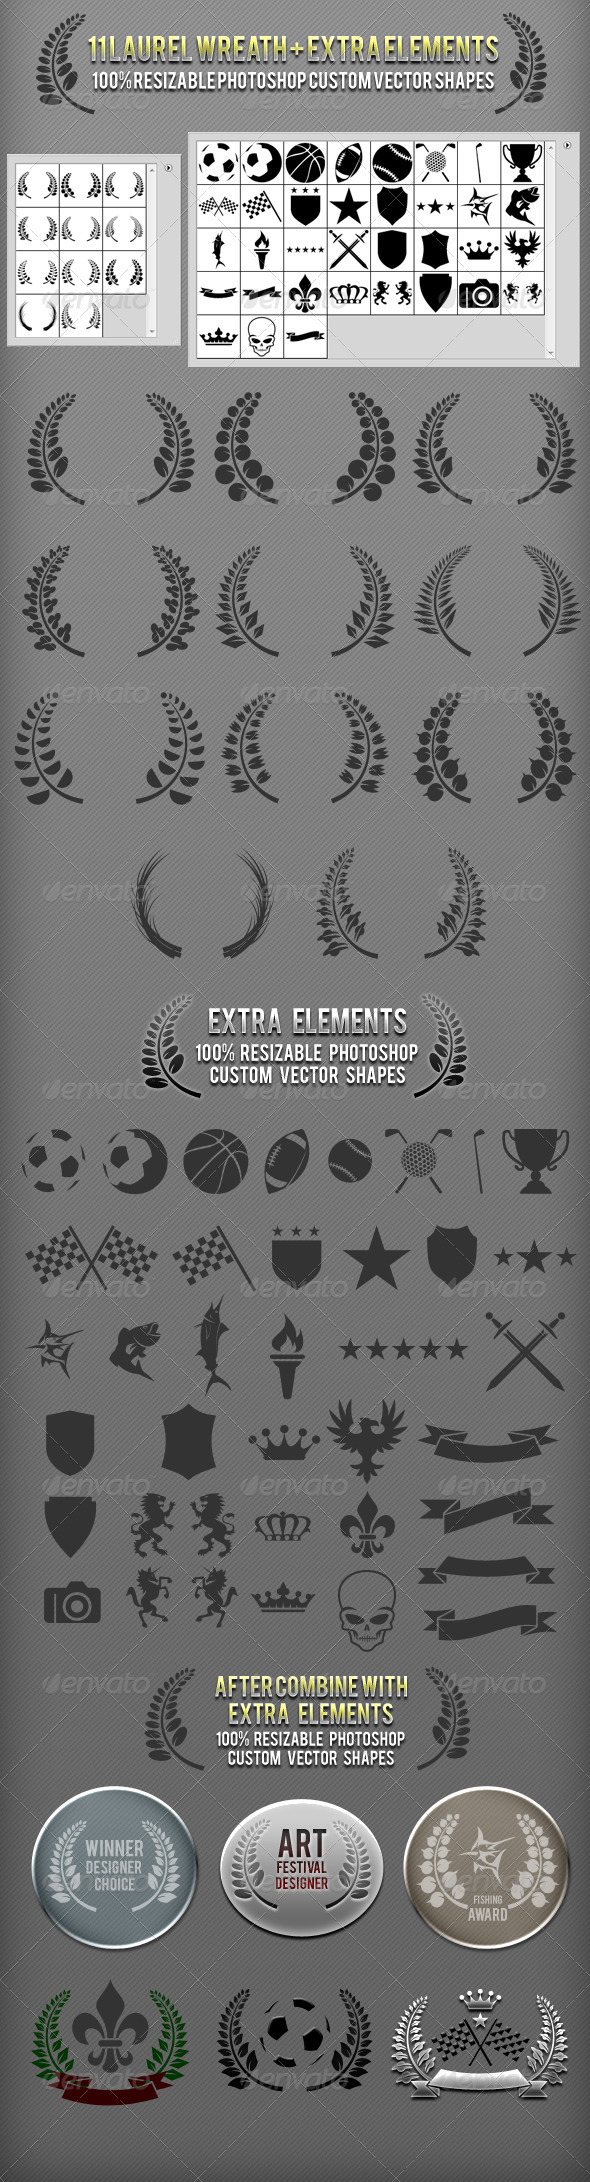 Laurel Wreath Photoshop Custom Shapes - Symbols Shapes